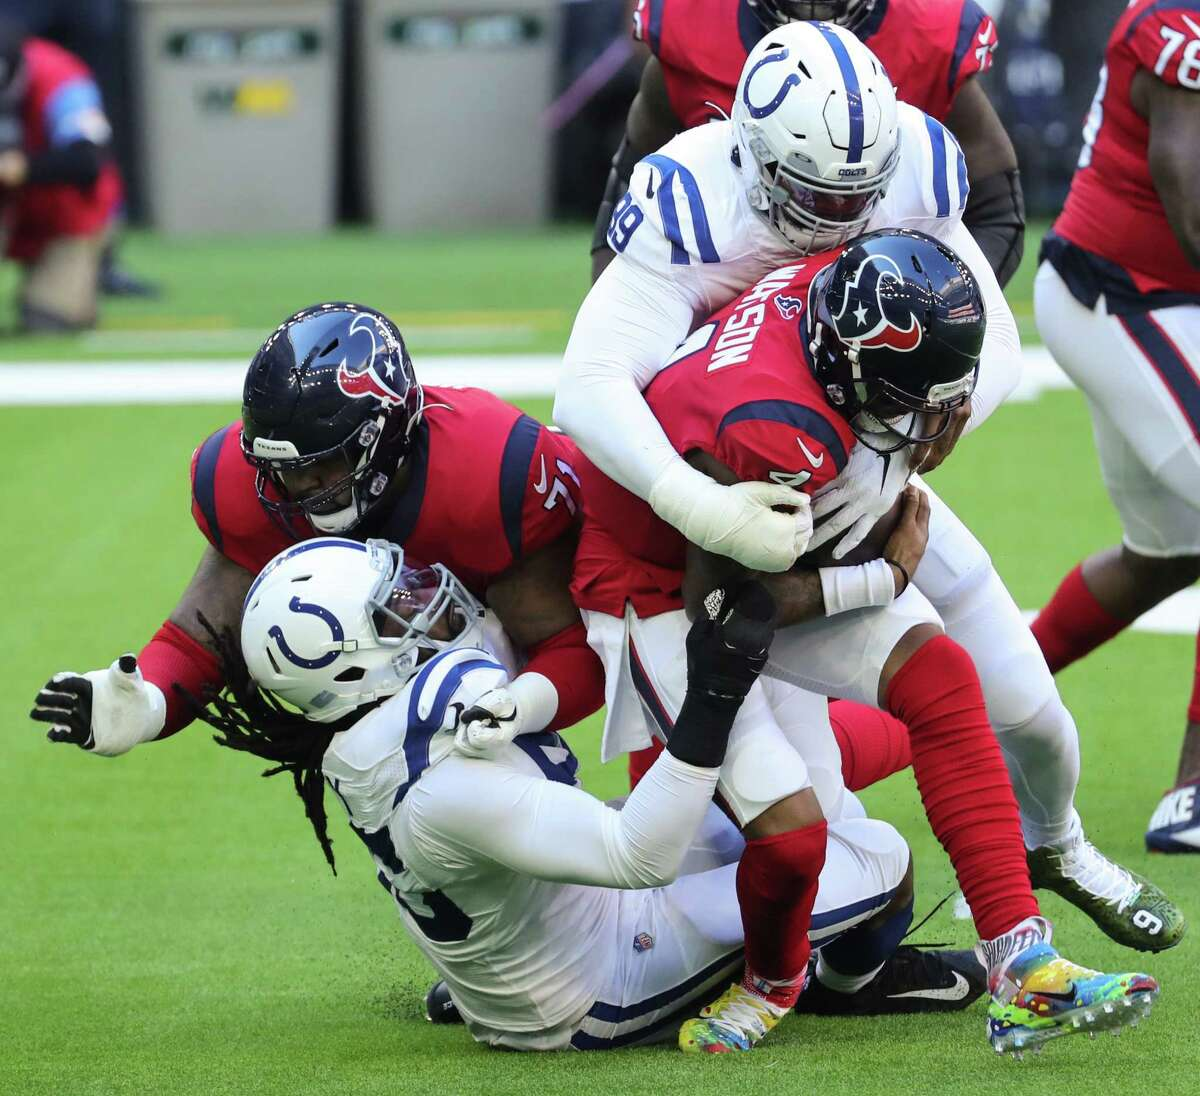 Texans QB Deshaun Watson has been sacked 11 times during the past two games after only being sacked 12 times in the previous seven contests.